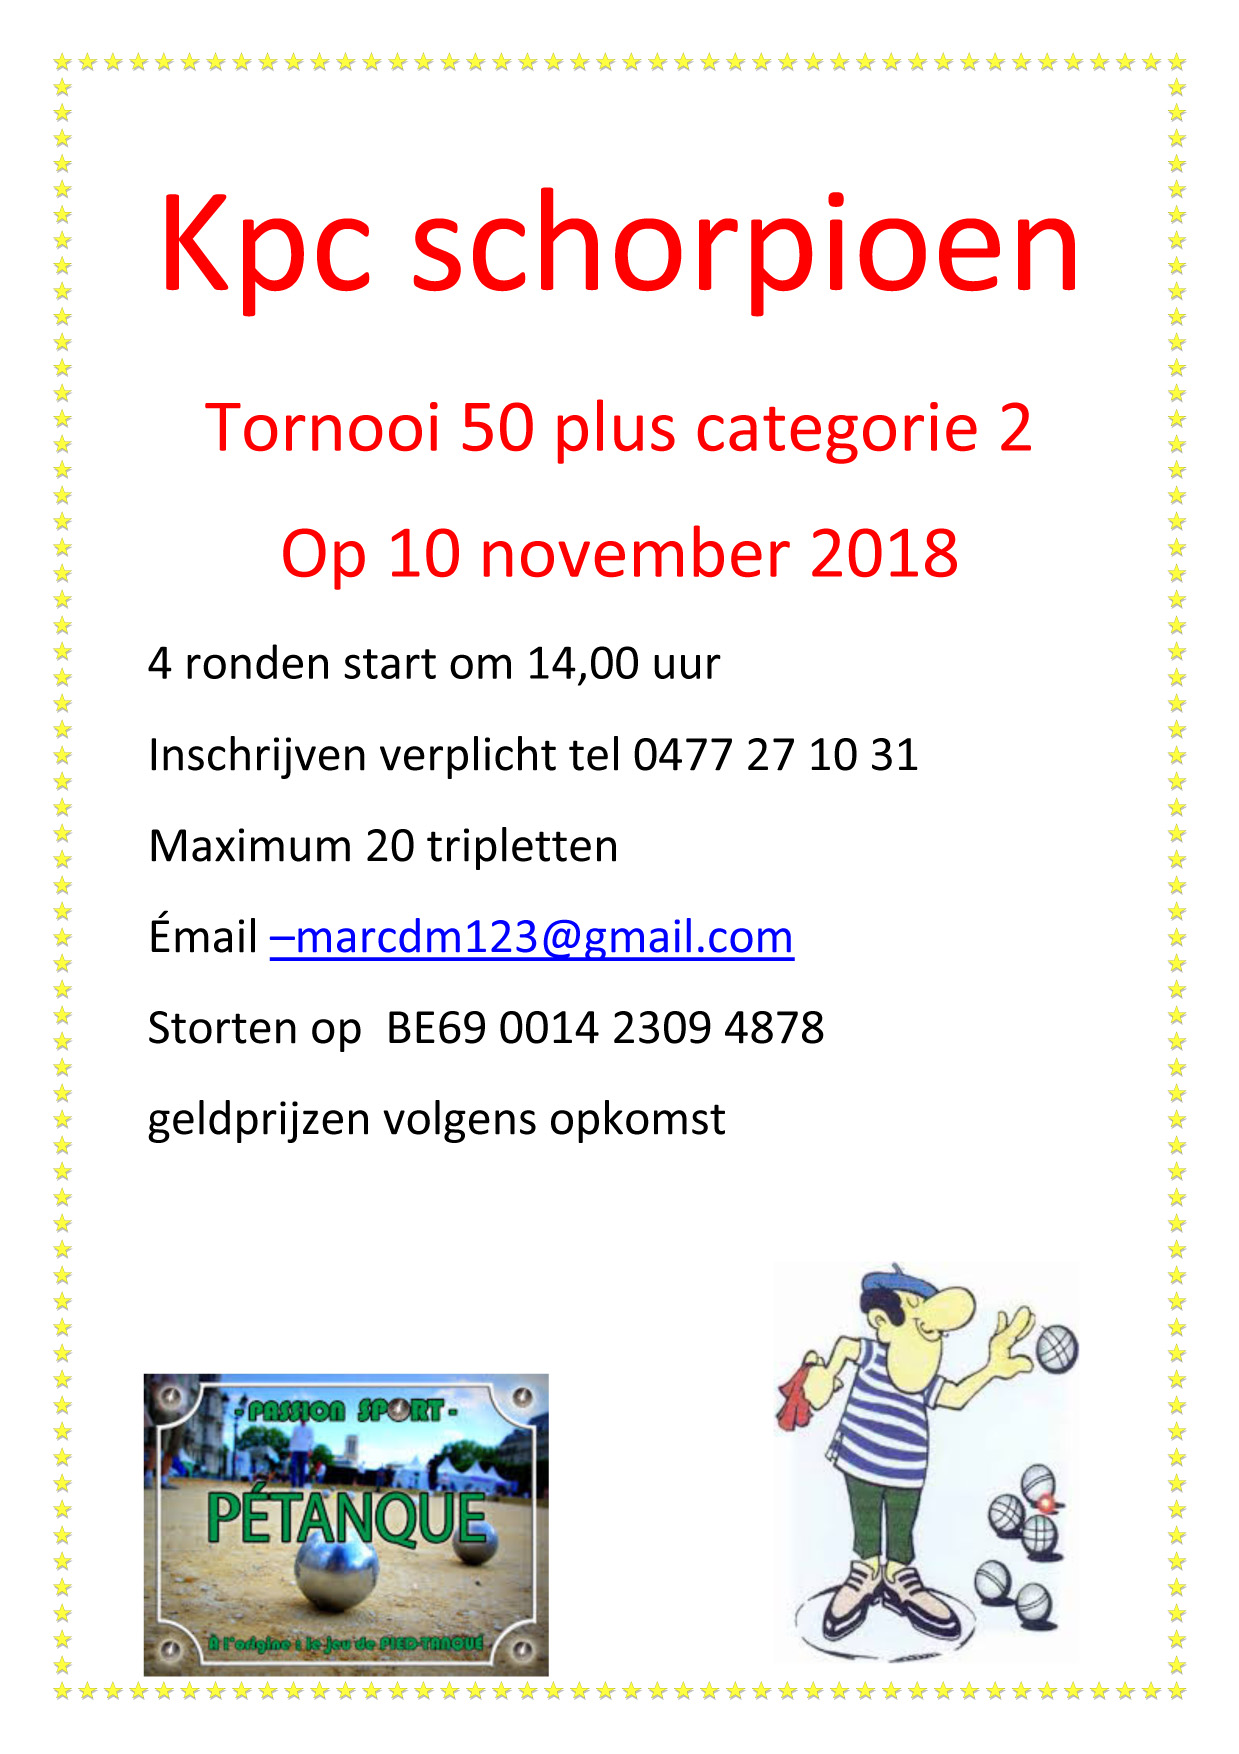 Schorpioen 50plus 10112018